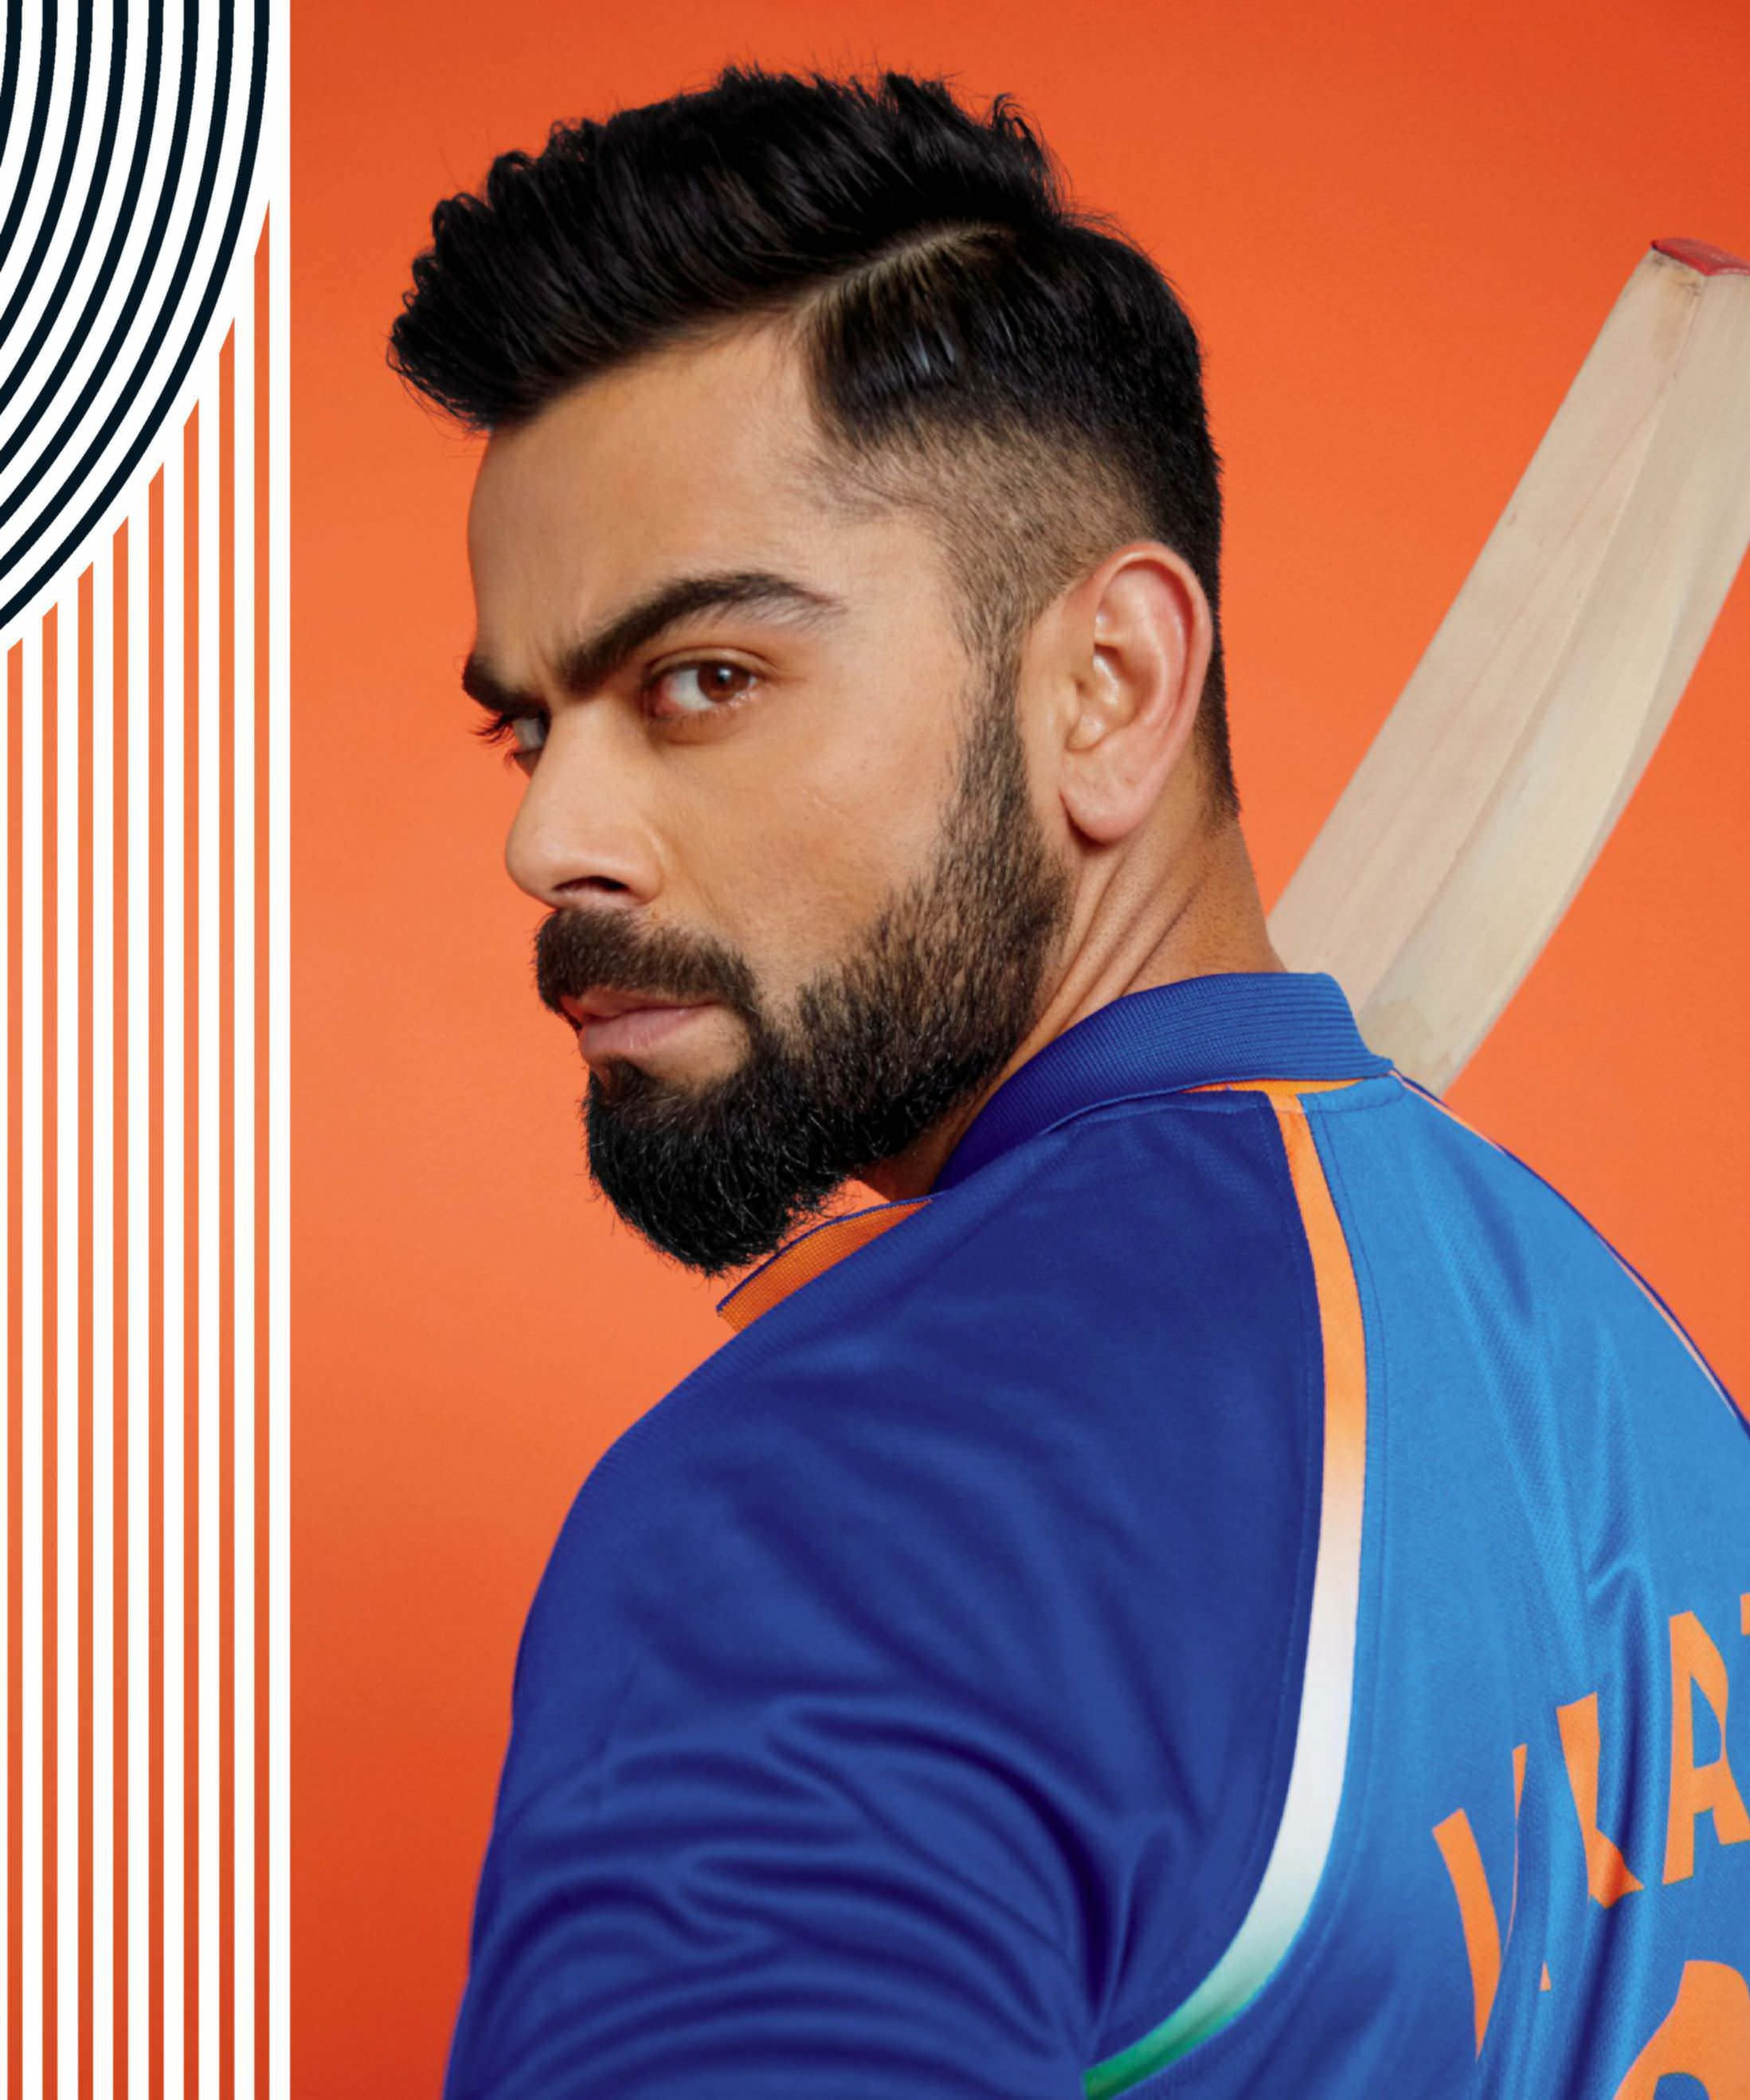 What Are Virat Kohli S Education Qualifications Quora